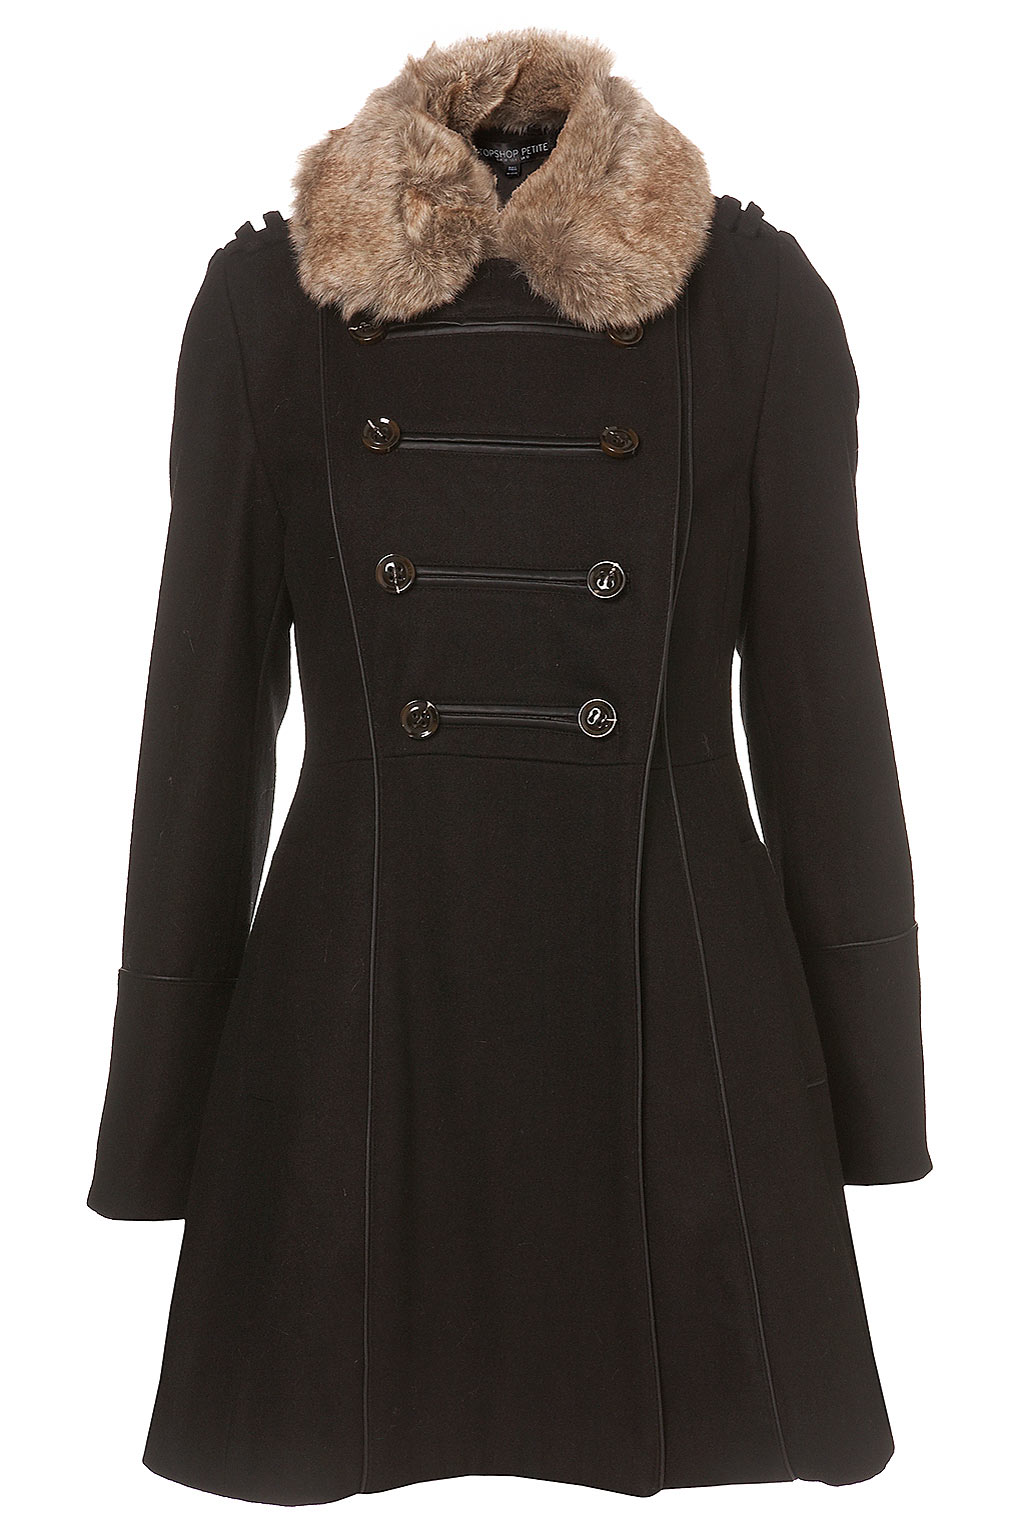 fur-jacket-1 Most Stylish Faux Fur Coats and Jackets For Women (Pictures)